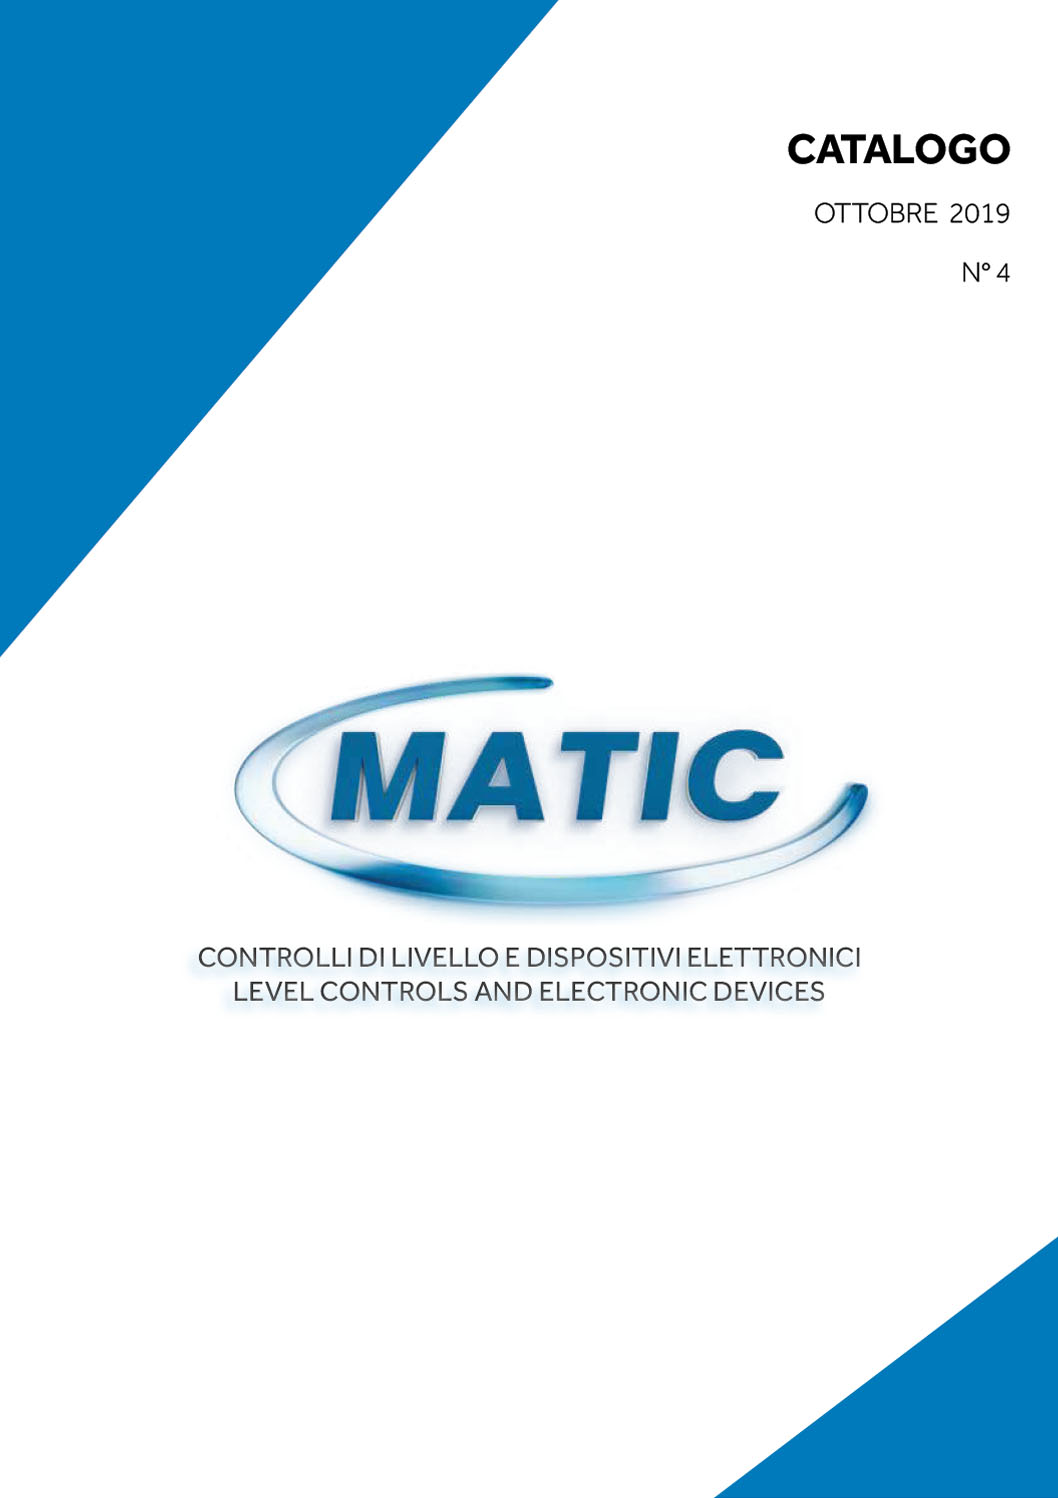 Matic Catalogue supplied by ElectroMechanica